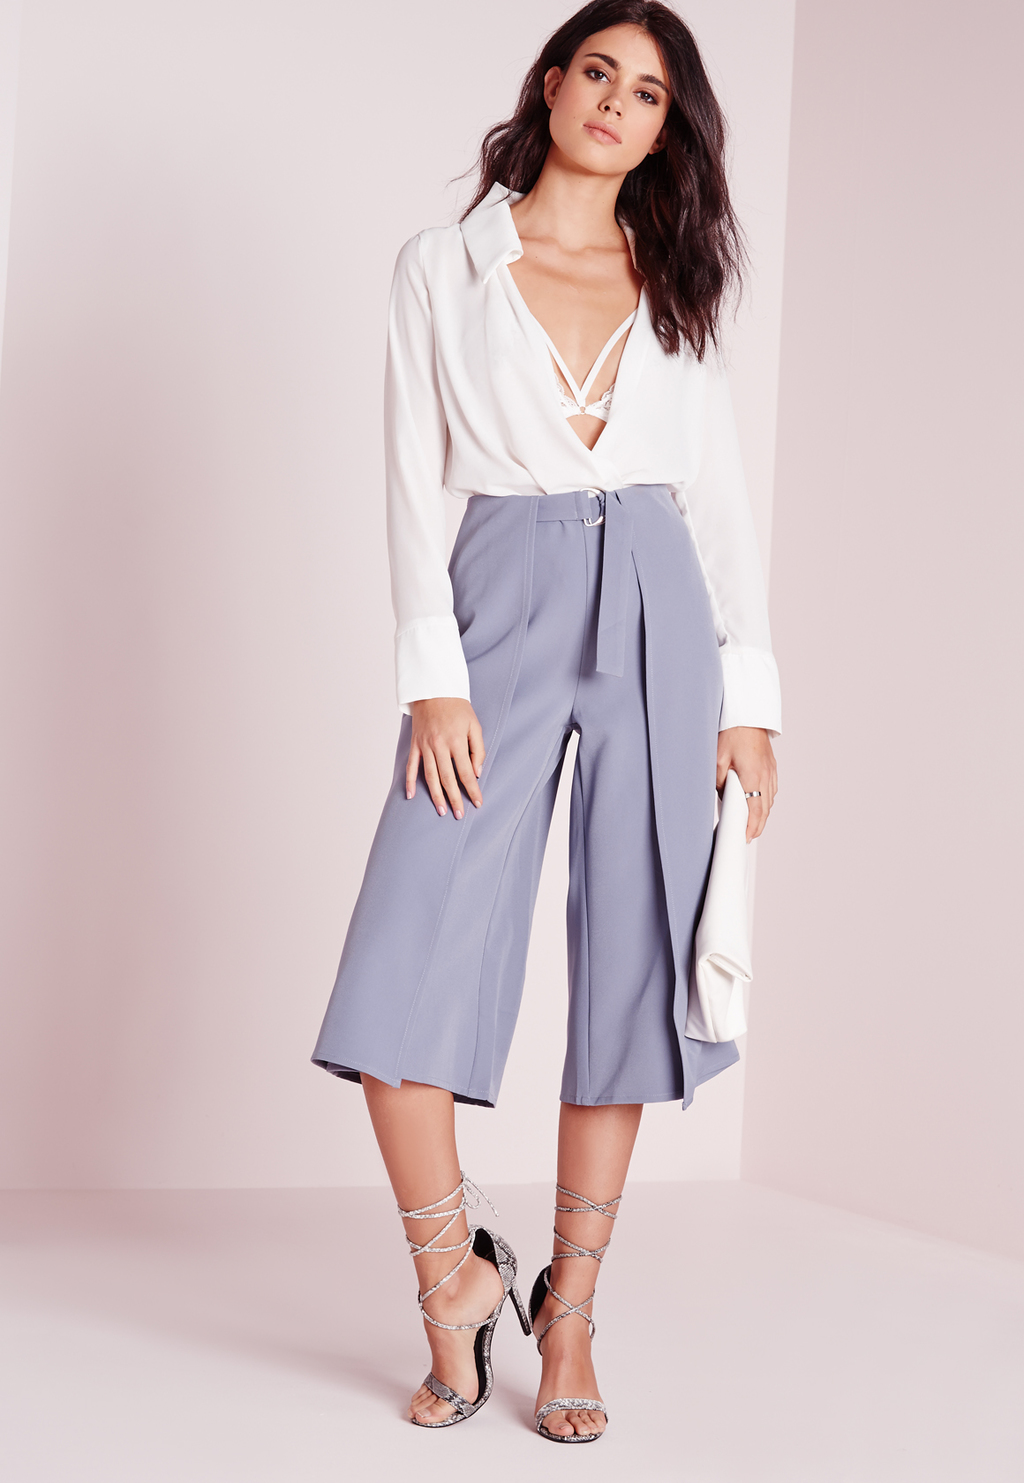 D Ring Detail Culottes Grey, Grey - pattern: plain; waist detail: belted waist/tie at waist/drawstring; waist: mid/regular rise; predominant colour: pale blue; fibres: polyester/polyamide - 100%; pattern type: fabric; texture group: other - light to midweight; occasions: creative work; season: s/s 2016; style: culotte; length: below the knee; fit: a-line; wardrobe: highlight